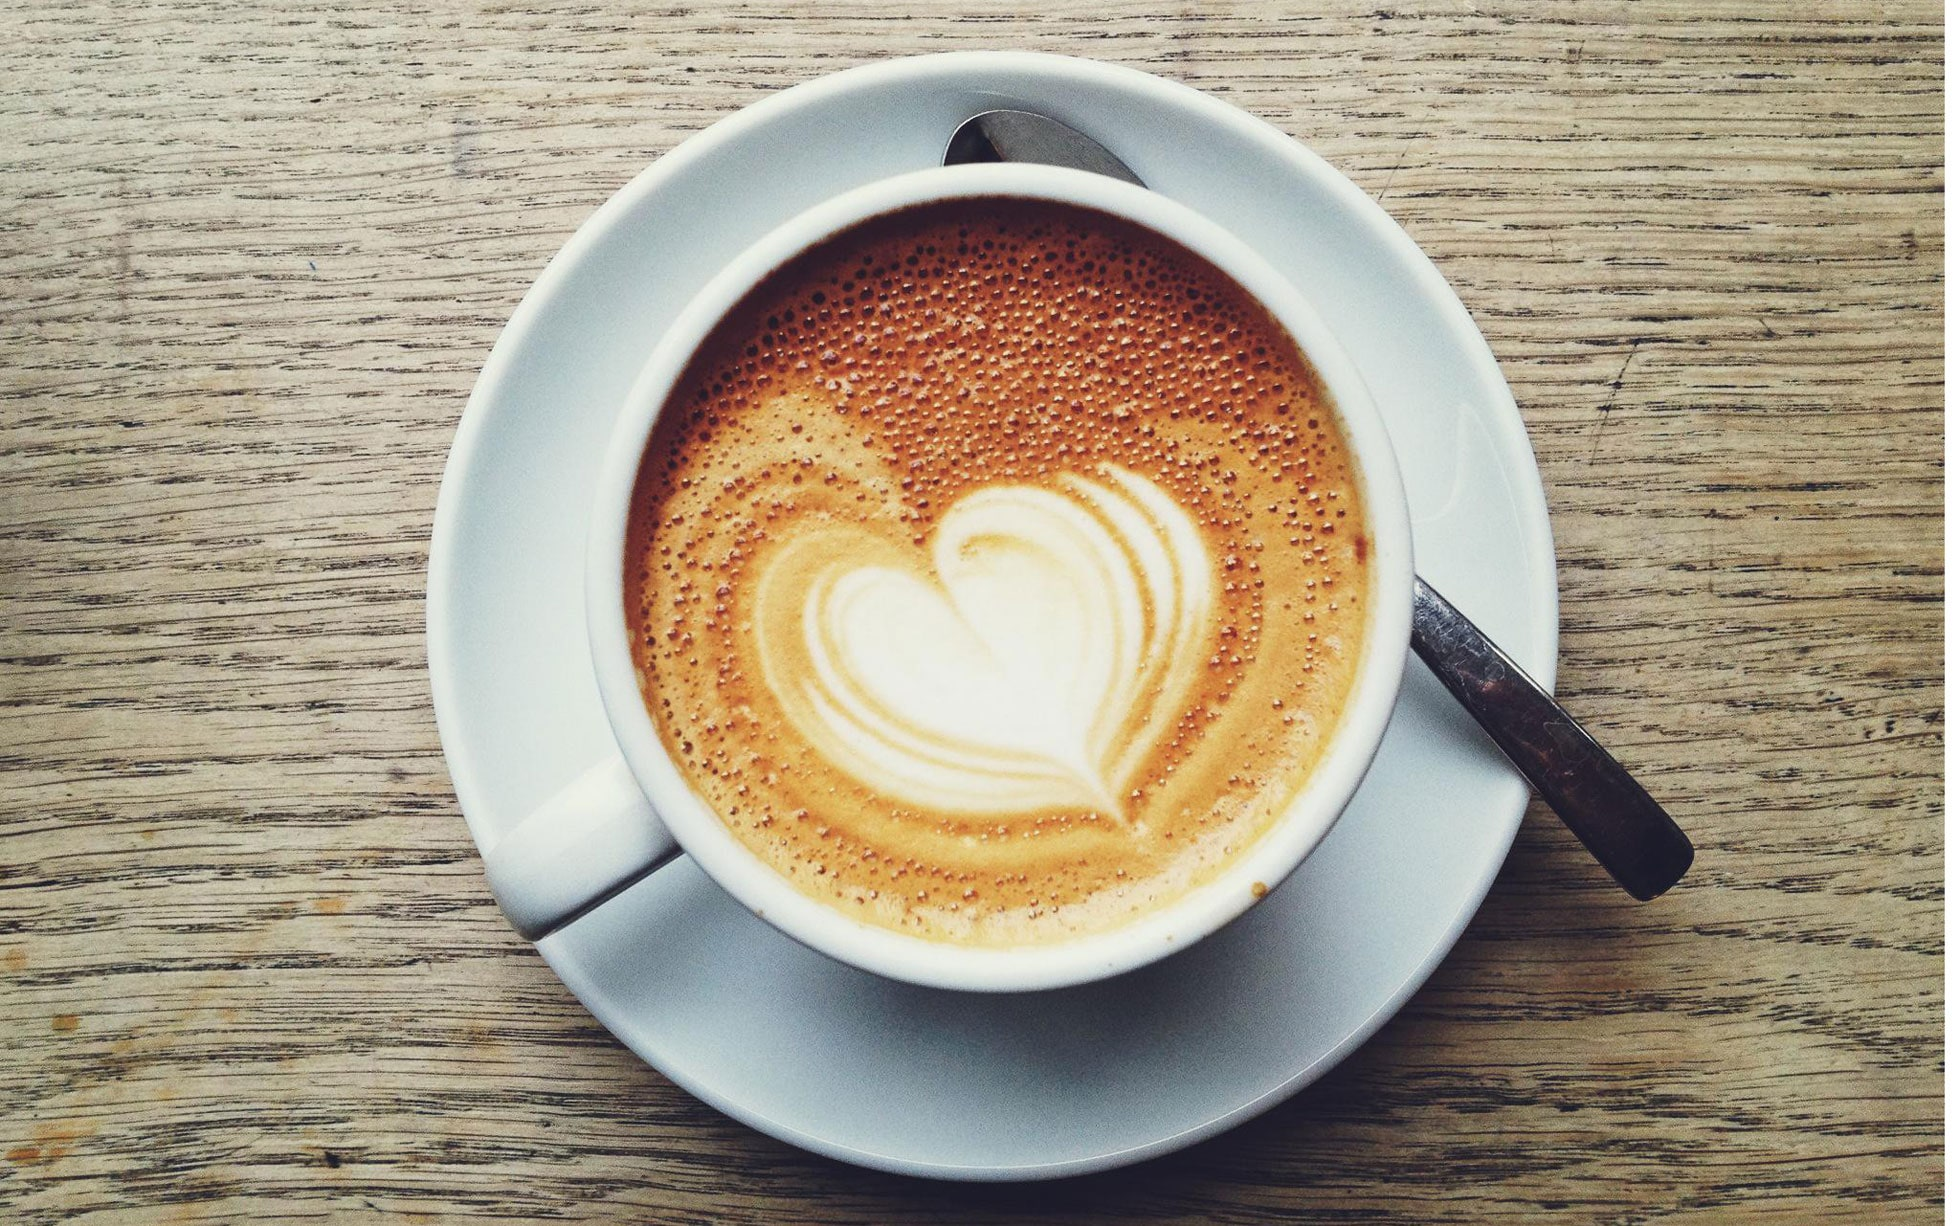 how coffee affects your